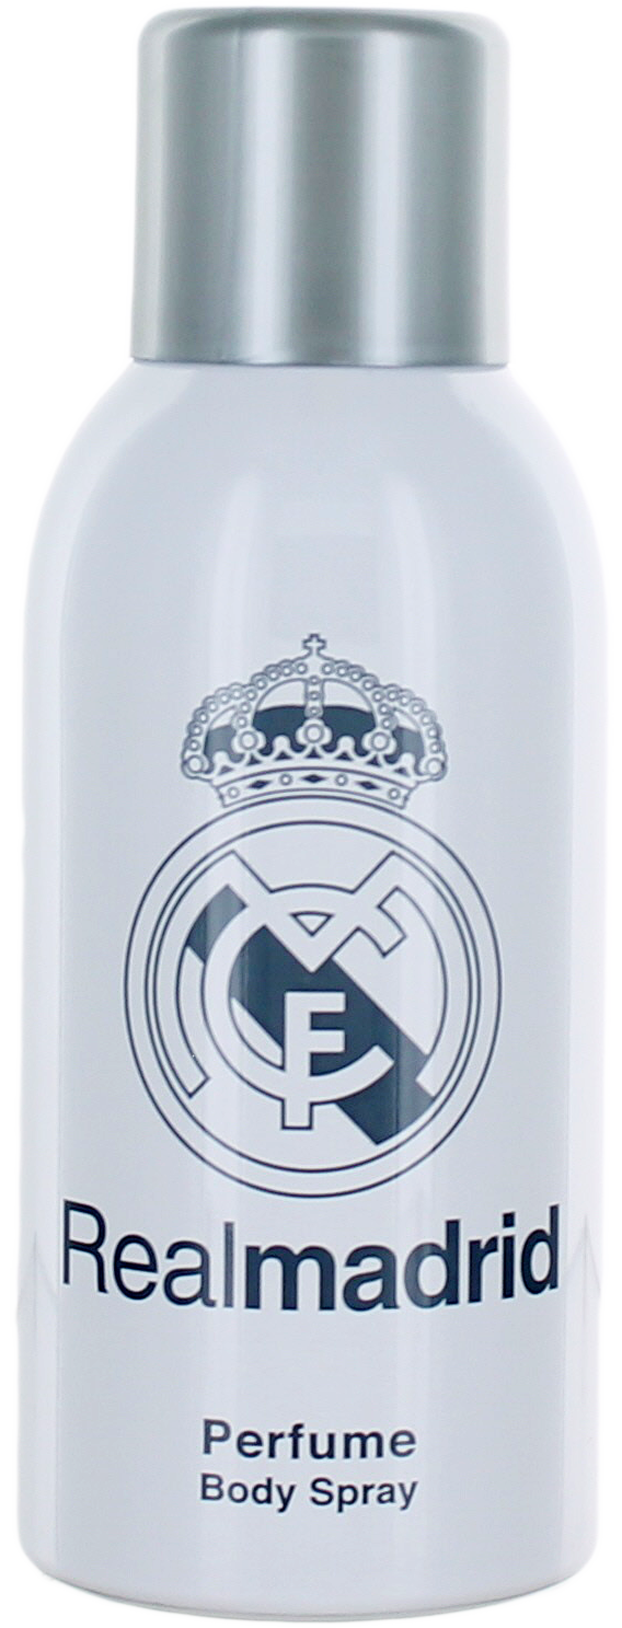 Real Madrid (M) Perfume Body Spray 5.1oz